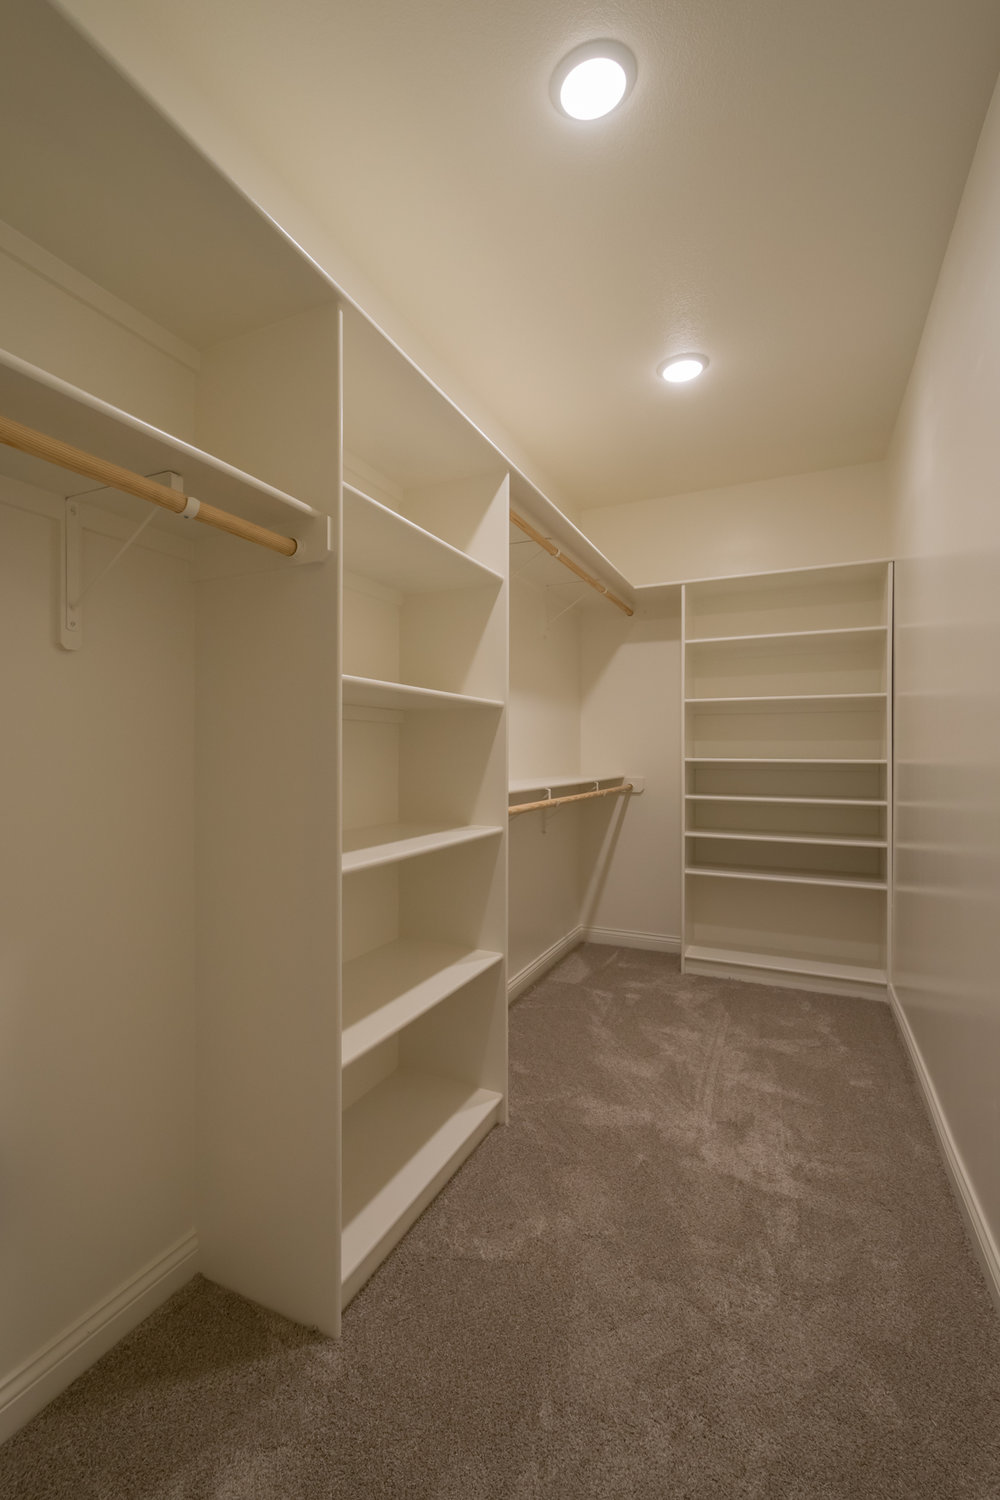 Our spacious closet at our new home for sale in The Gates community!